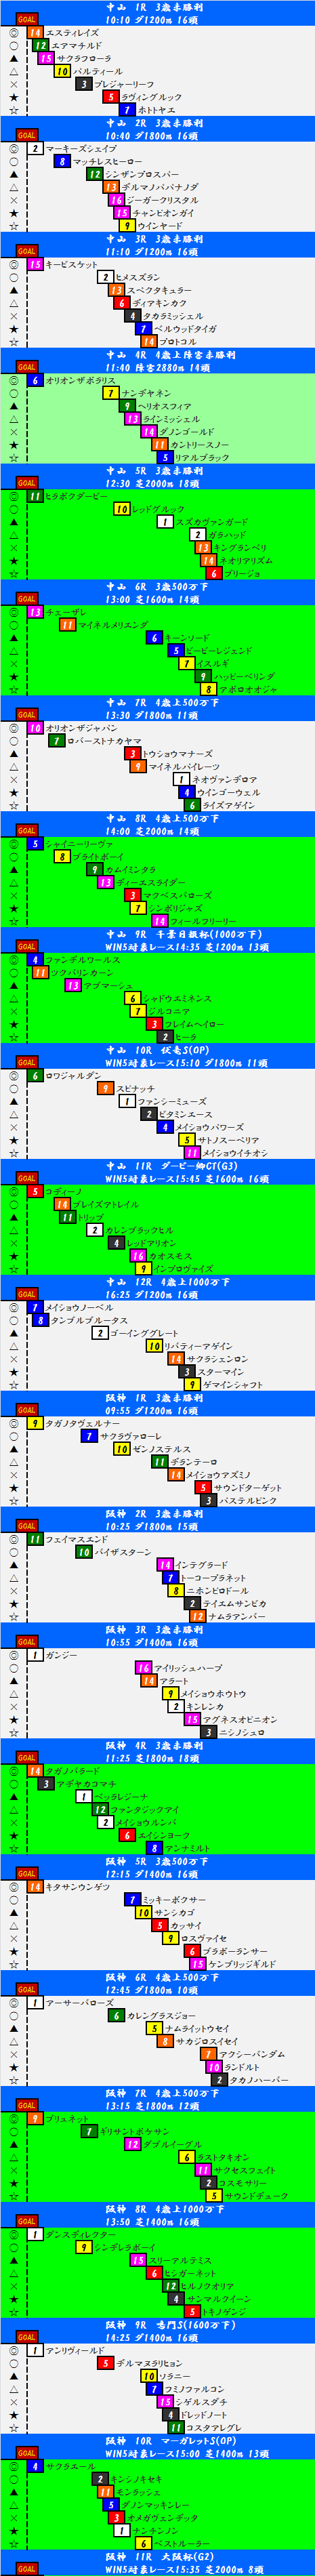 201404061.png